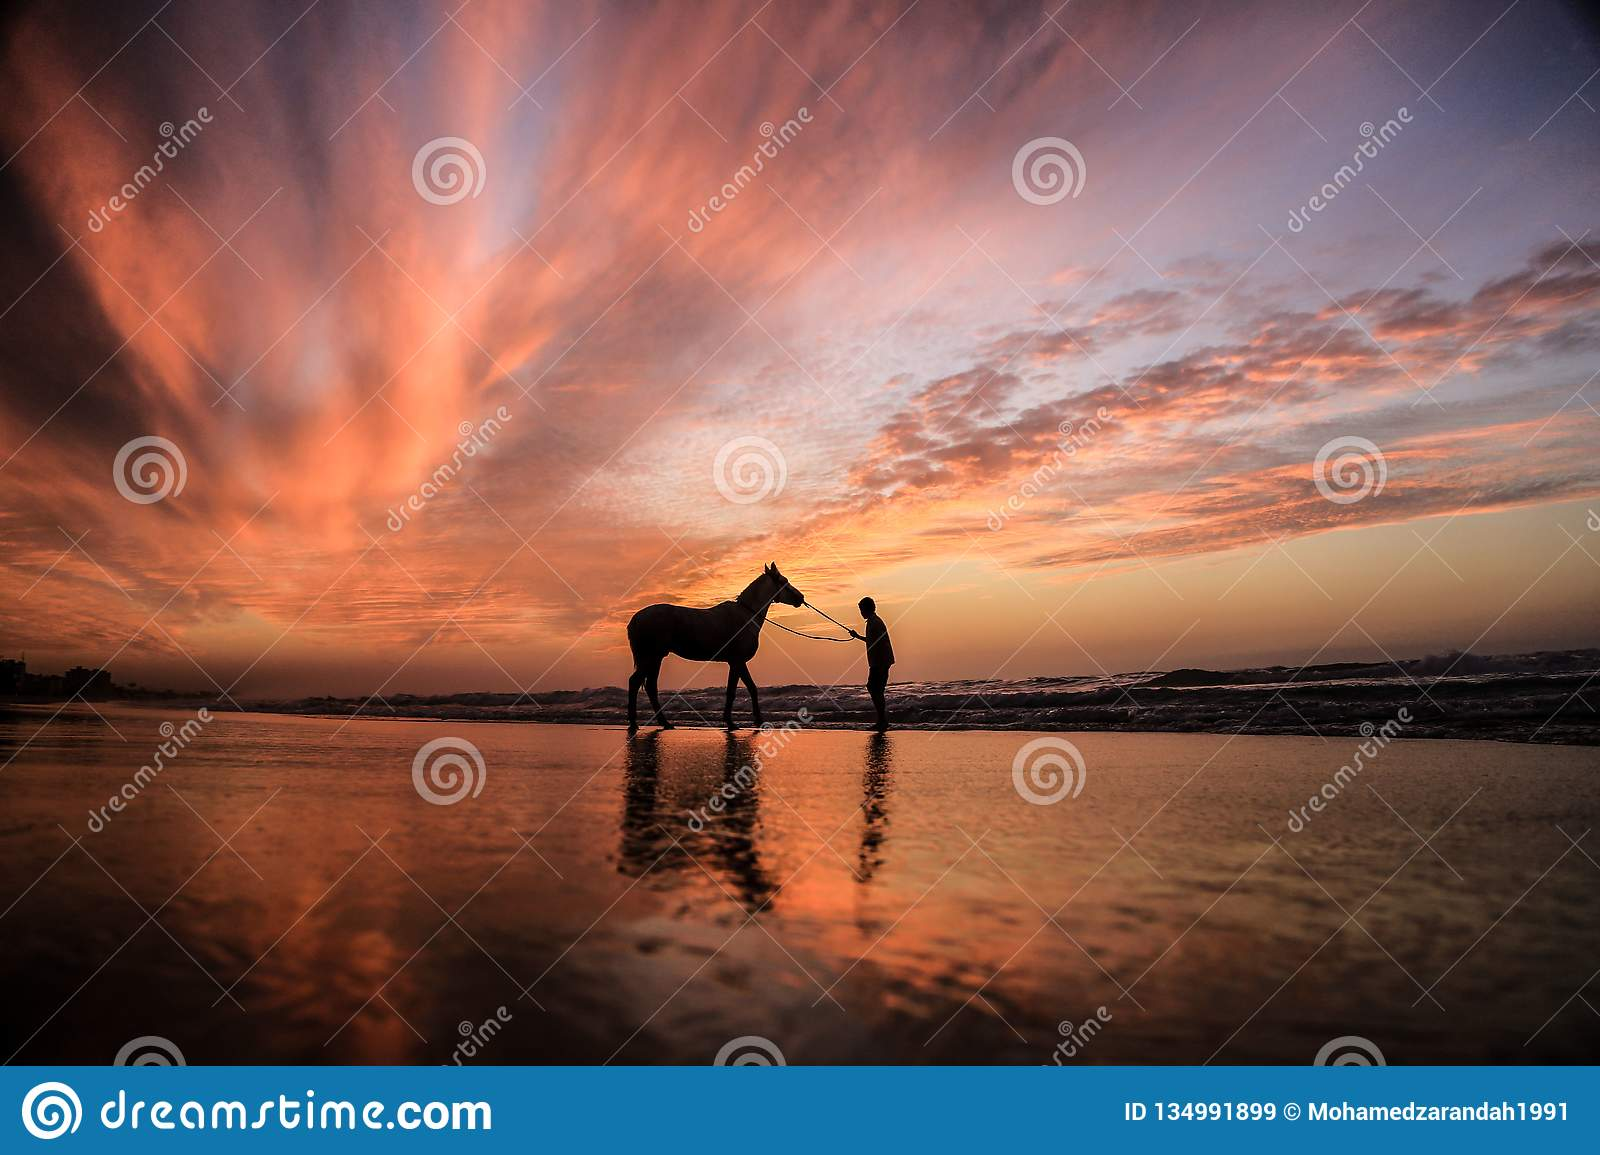 A child with a horse at sunset